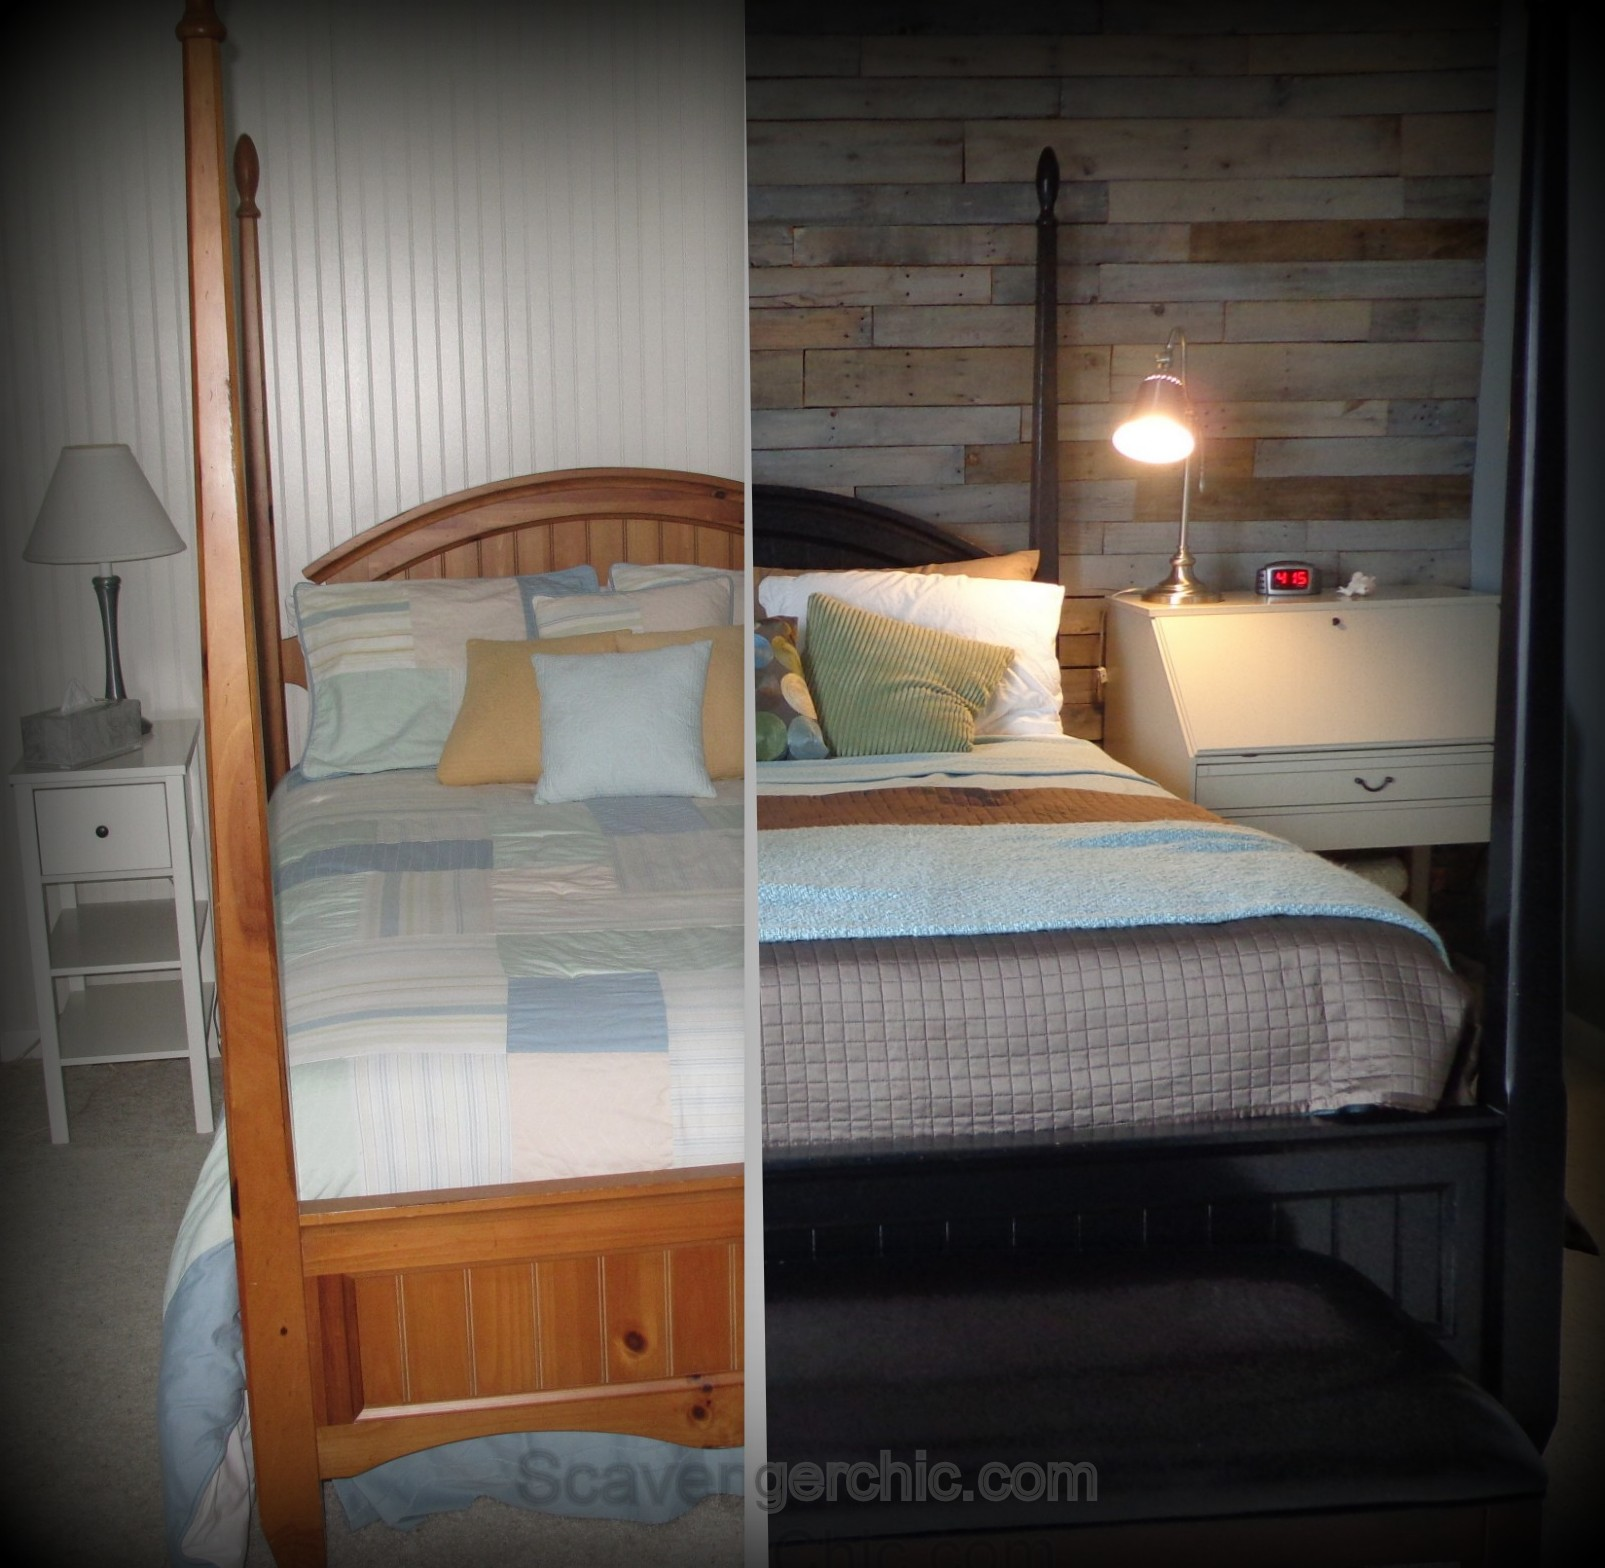 Warm And Rustic Pallet Wood Wall Scavenger Chic